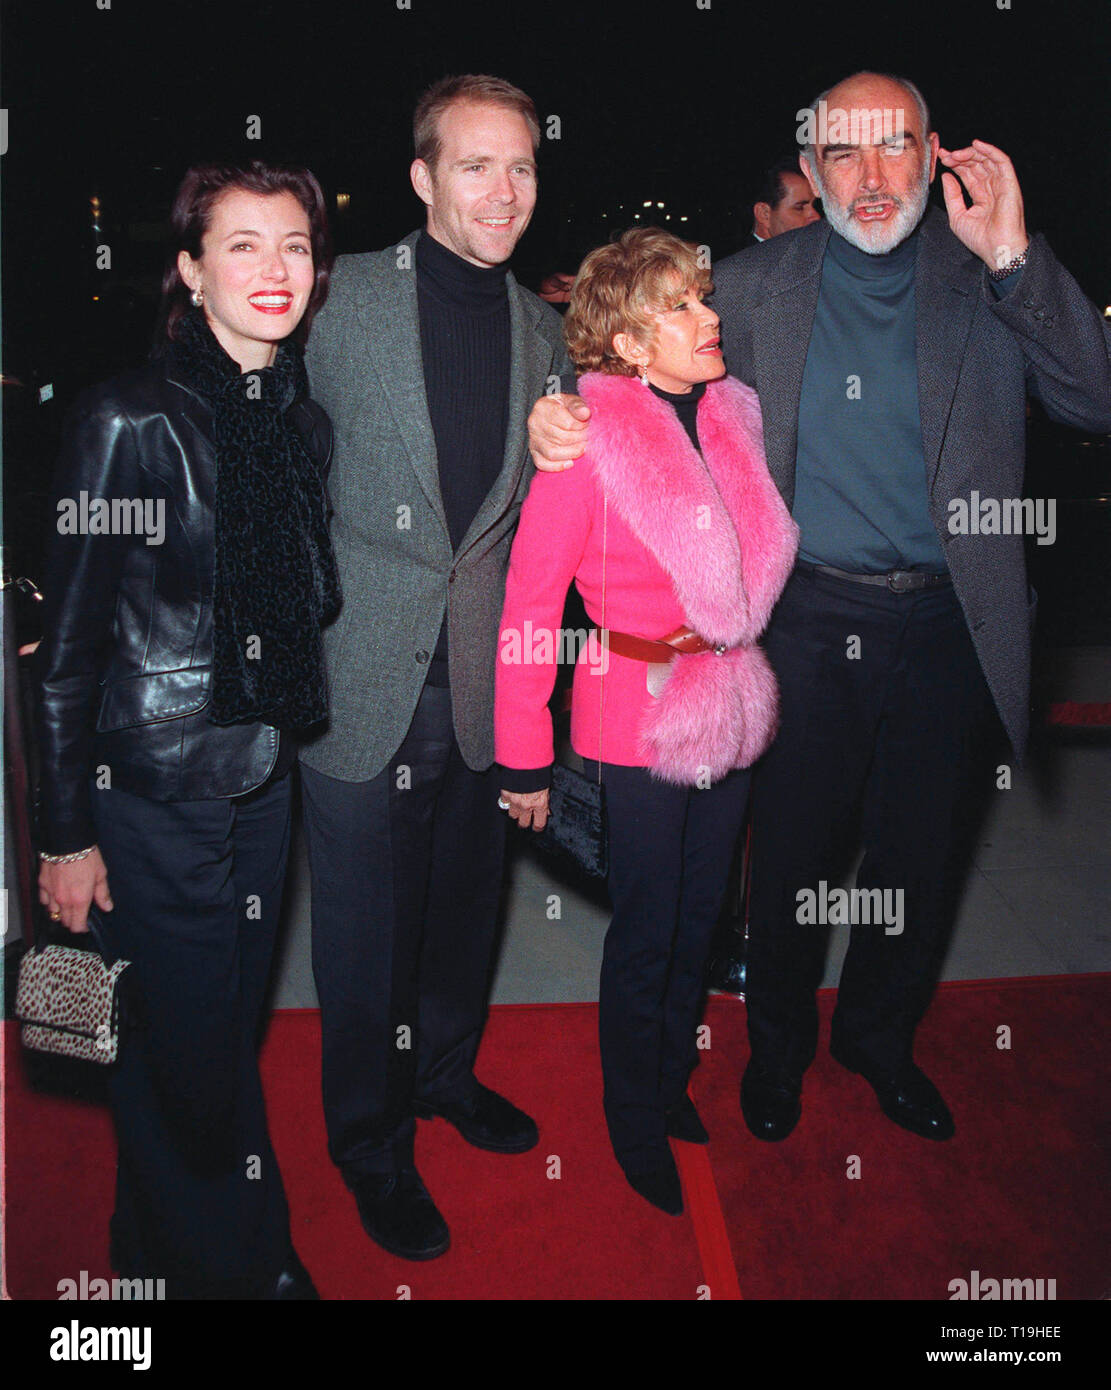 los-angeles-ca-december-11-1998-actor-sean-connery-right-wife-michelin-connery-with-actor-son-jason-connery-actress-wife-mia-sara-at-world-premiere-of-seans-new-movie-playing-by-heart-in-which-he-stars-with-gillian-anderson-paul-smith-featureflash-T19HEE.jpg